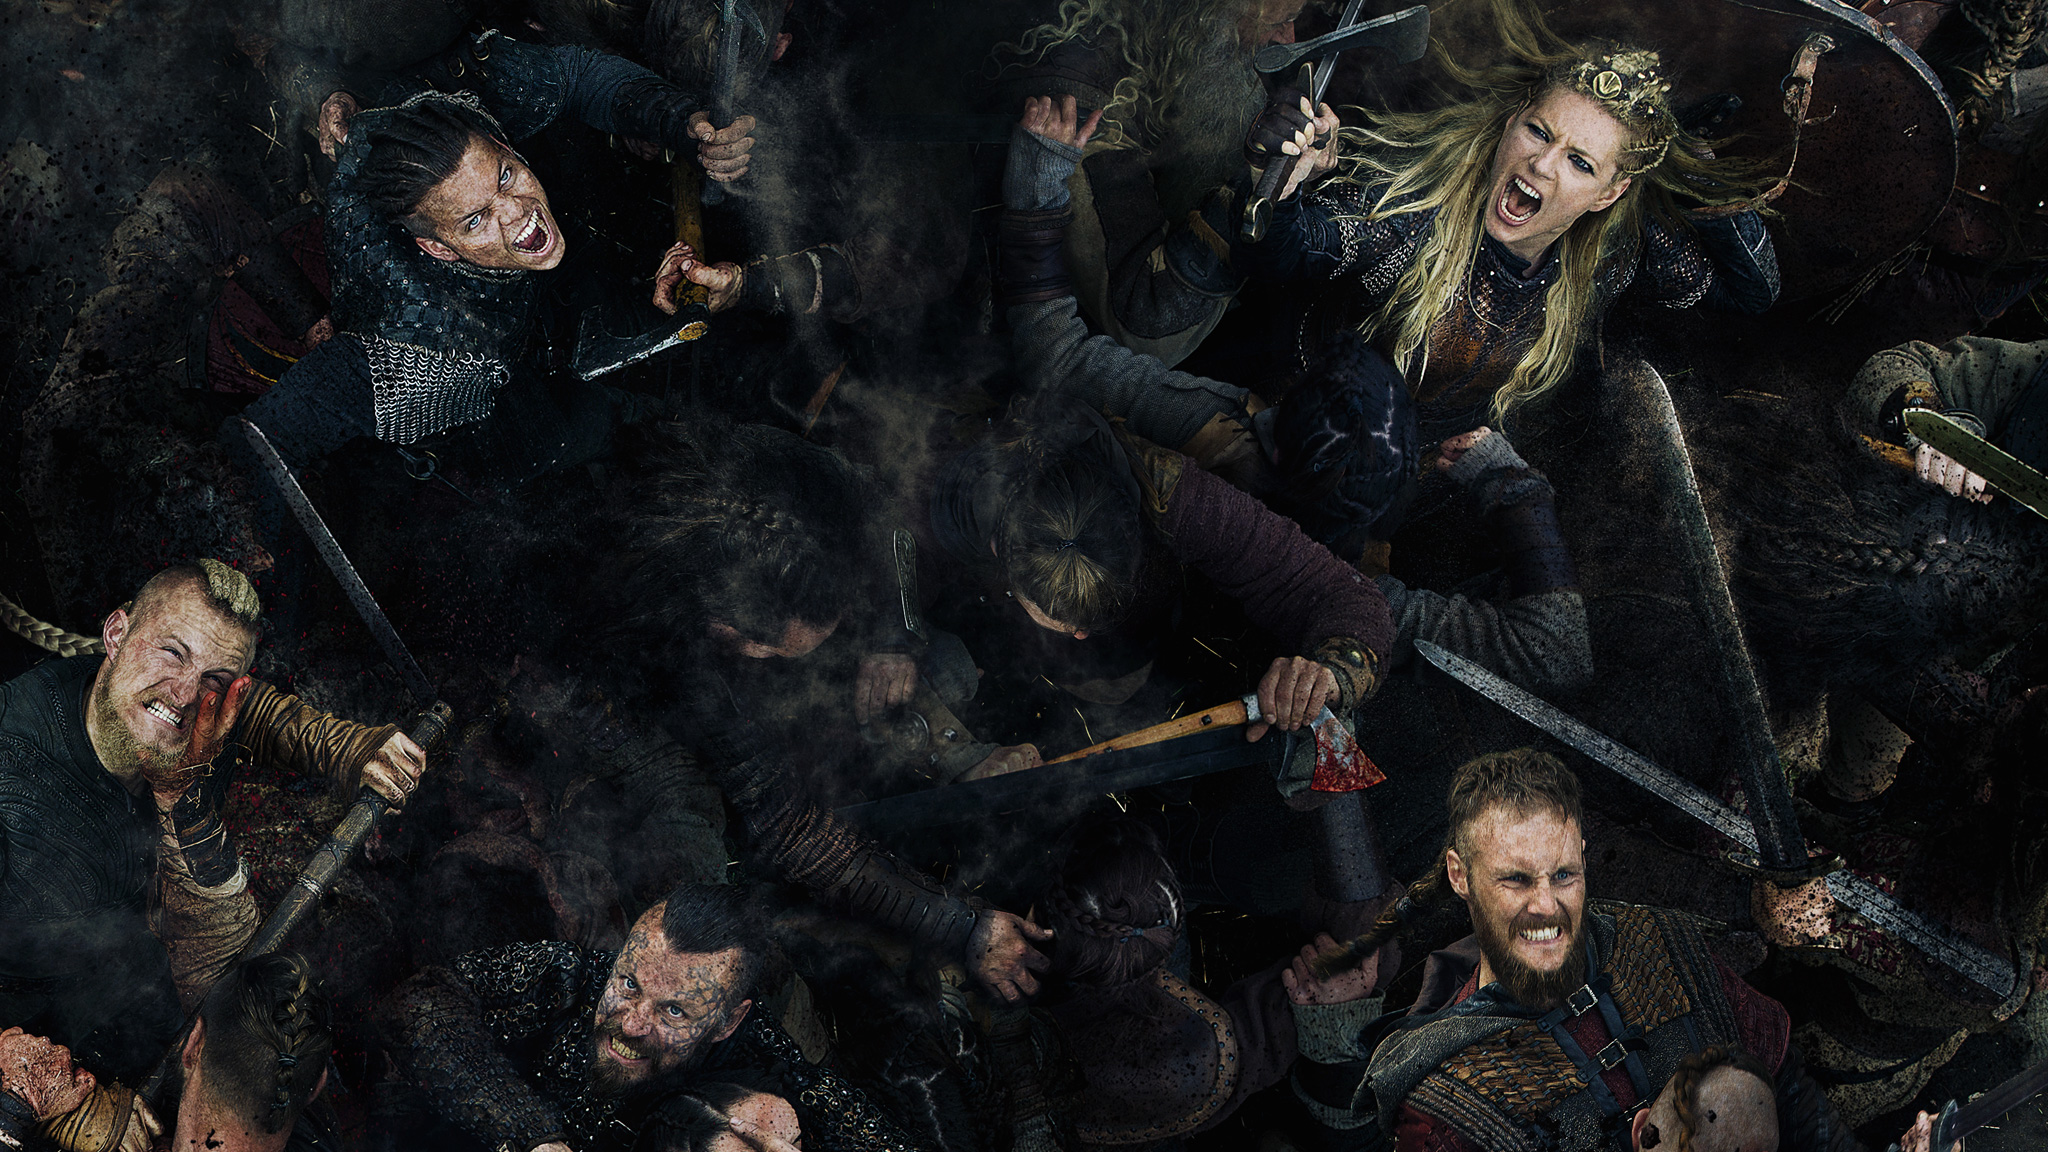 Ivar the Boneless Ragnar Lothbrok's Son Kills Lagertha or Not Vikings